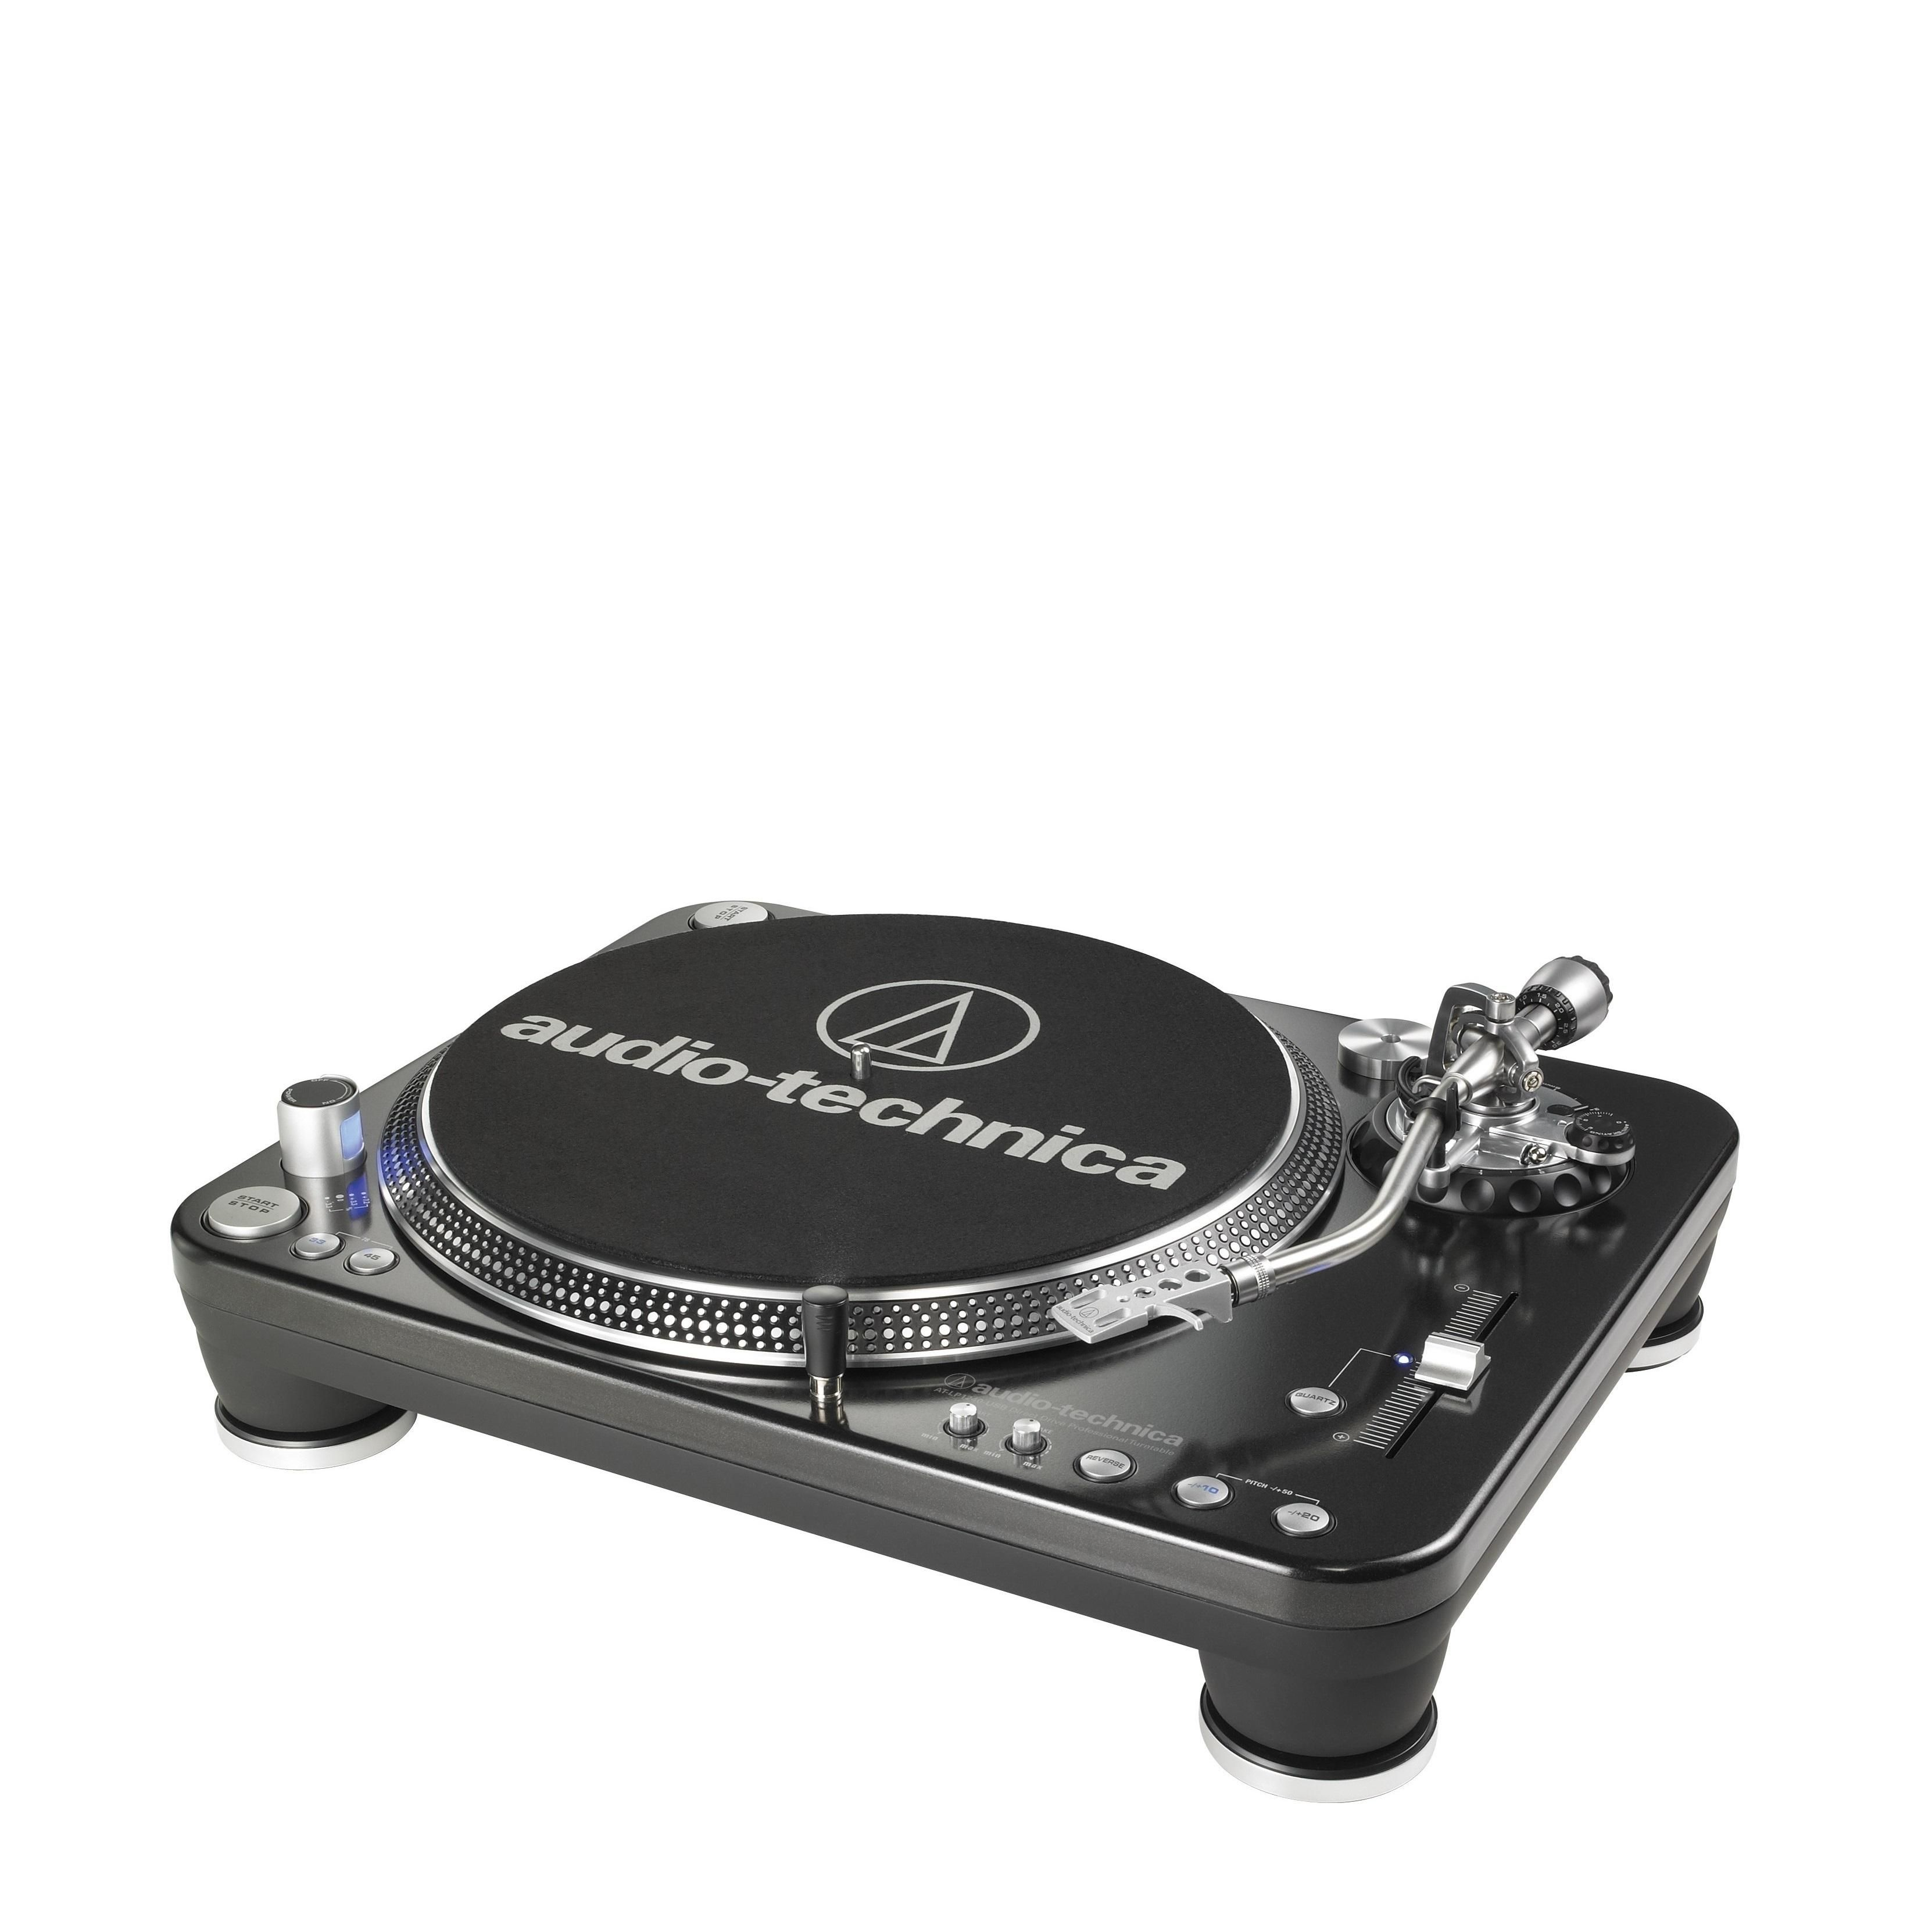 Amazon Com Audio Technica At Lp120 Usb Direct Drive Professional Turntable In Silver Electronics Audio Technica Usb Turntable Audio Technica Turntable